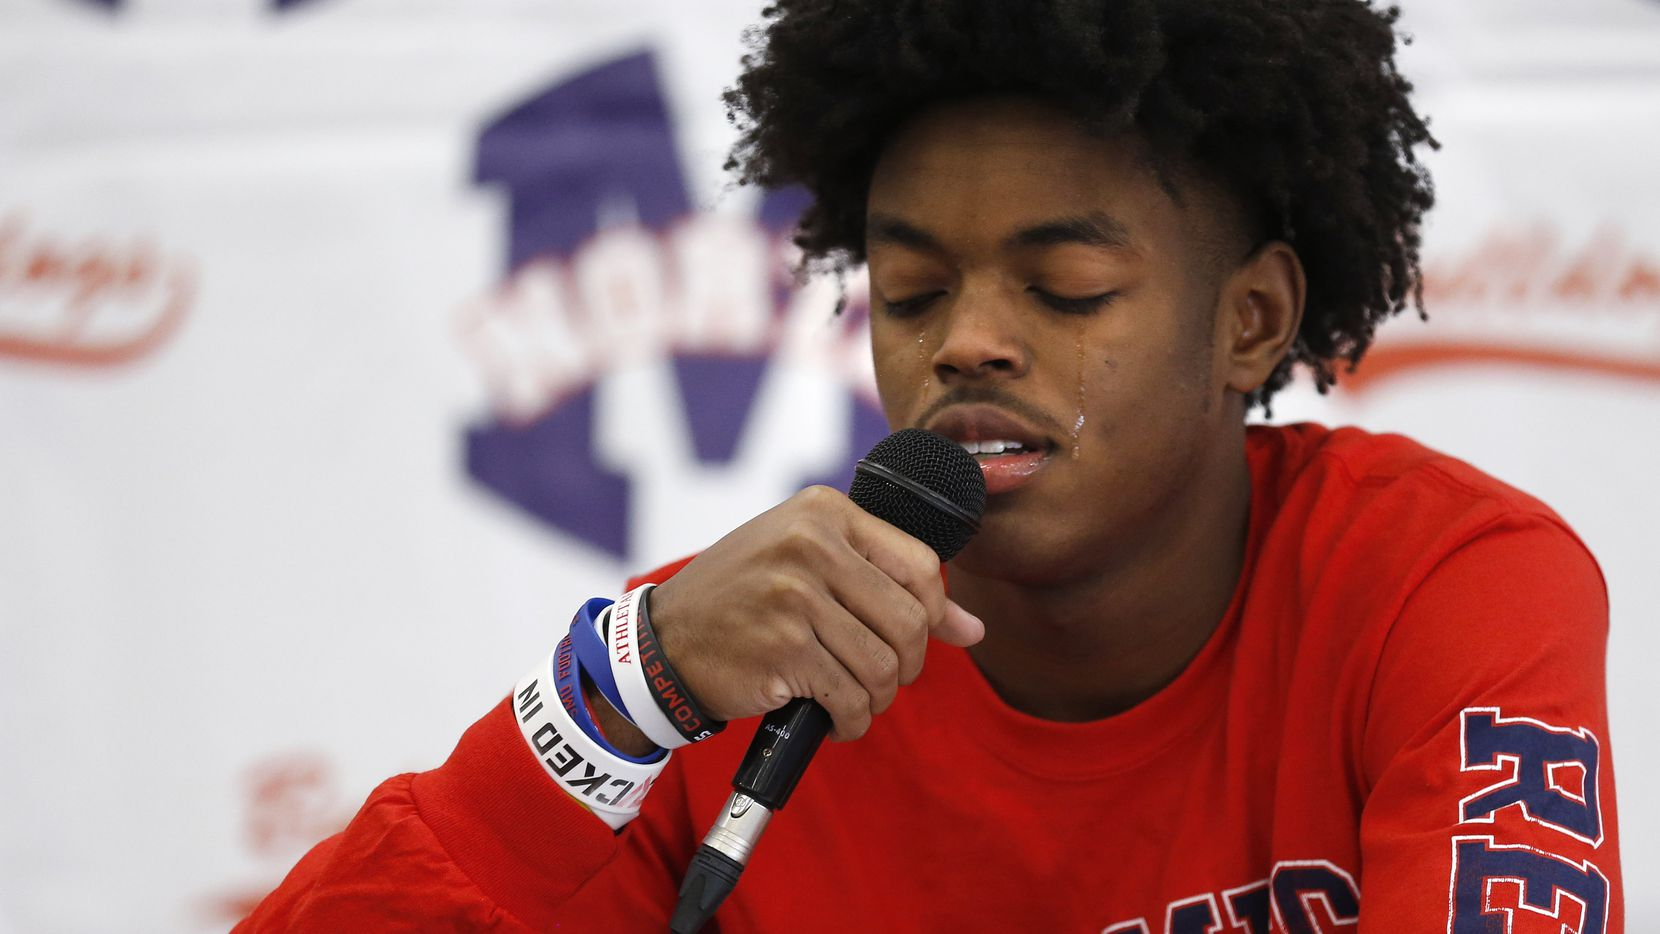 McKinney North wide receiver J.J. Henry cries as he talks about losing his mother to breast cancer during a signing day ceremony at McKinney North High School on Wednesday, December 16, 2020 in McKinney, Texas. Henry signed his letter of intent to play for the University of Mississippi.